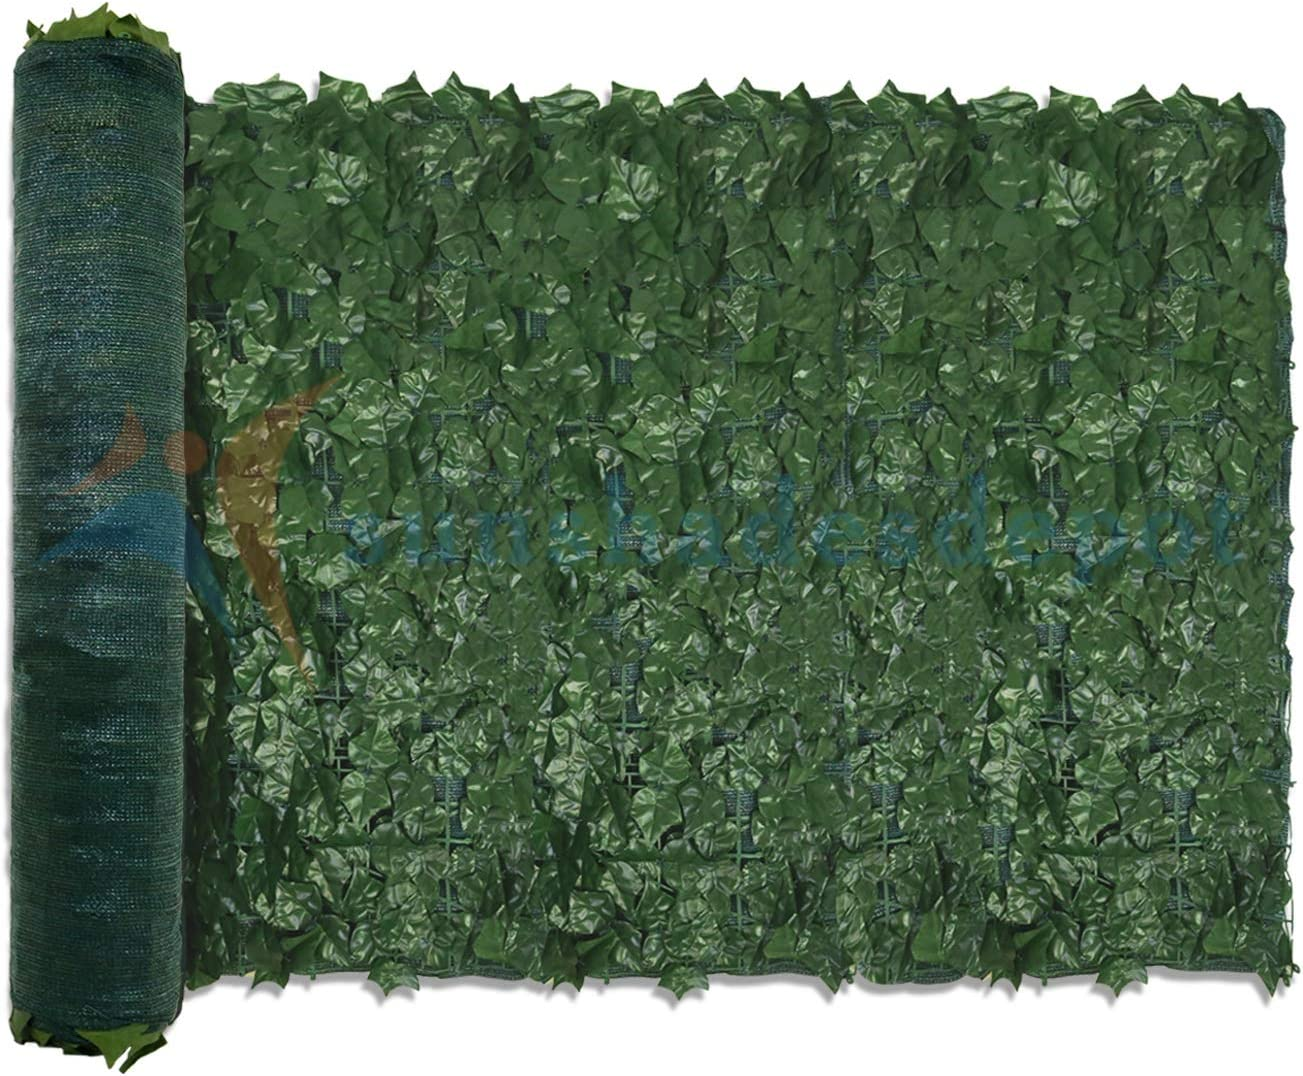 TANG by Sunshades Depot 4'x8' Artificial Scr Leaf Great interest Ivy Faux Fence Manufacturer regenerated product